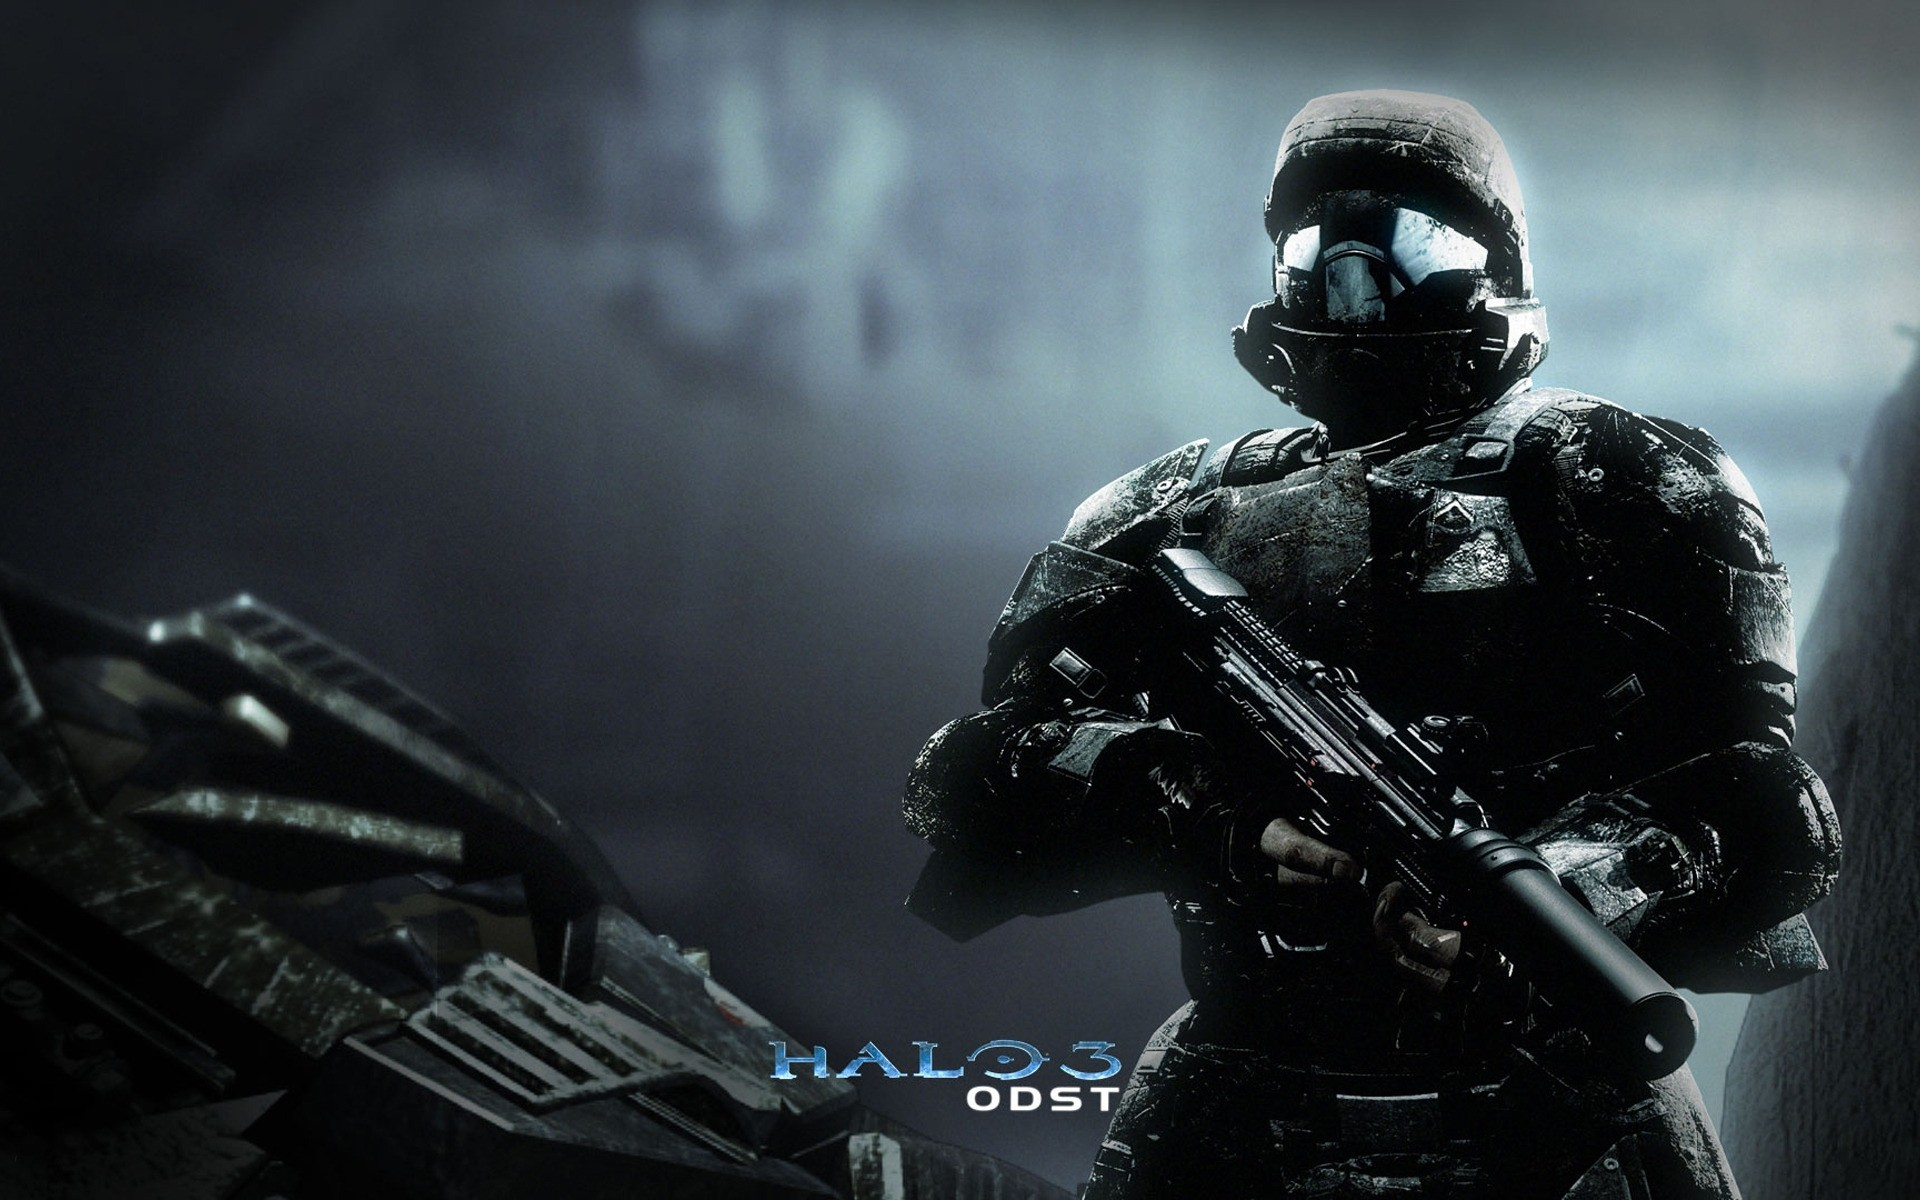 halo 3 odst. iphone wallpapers for free.